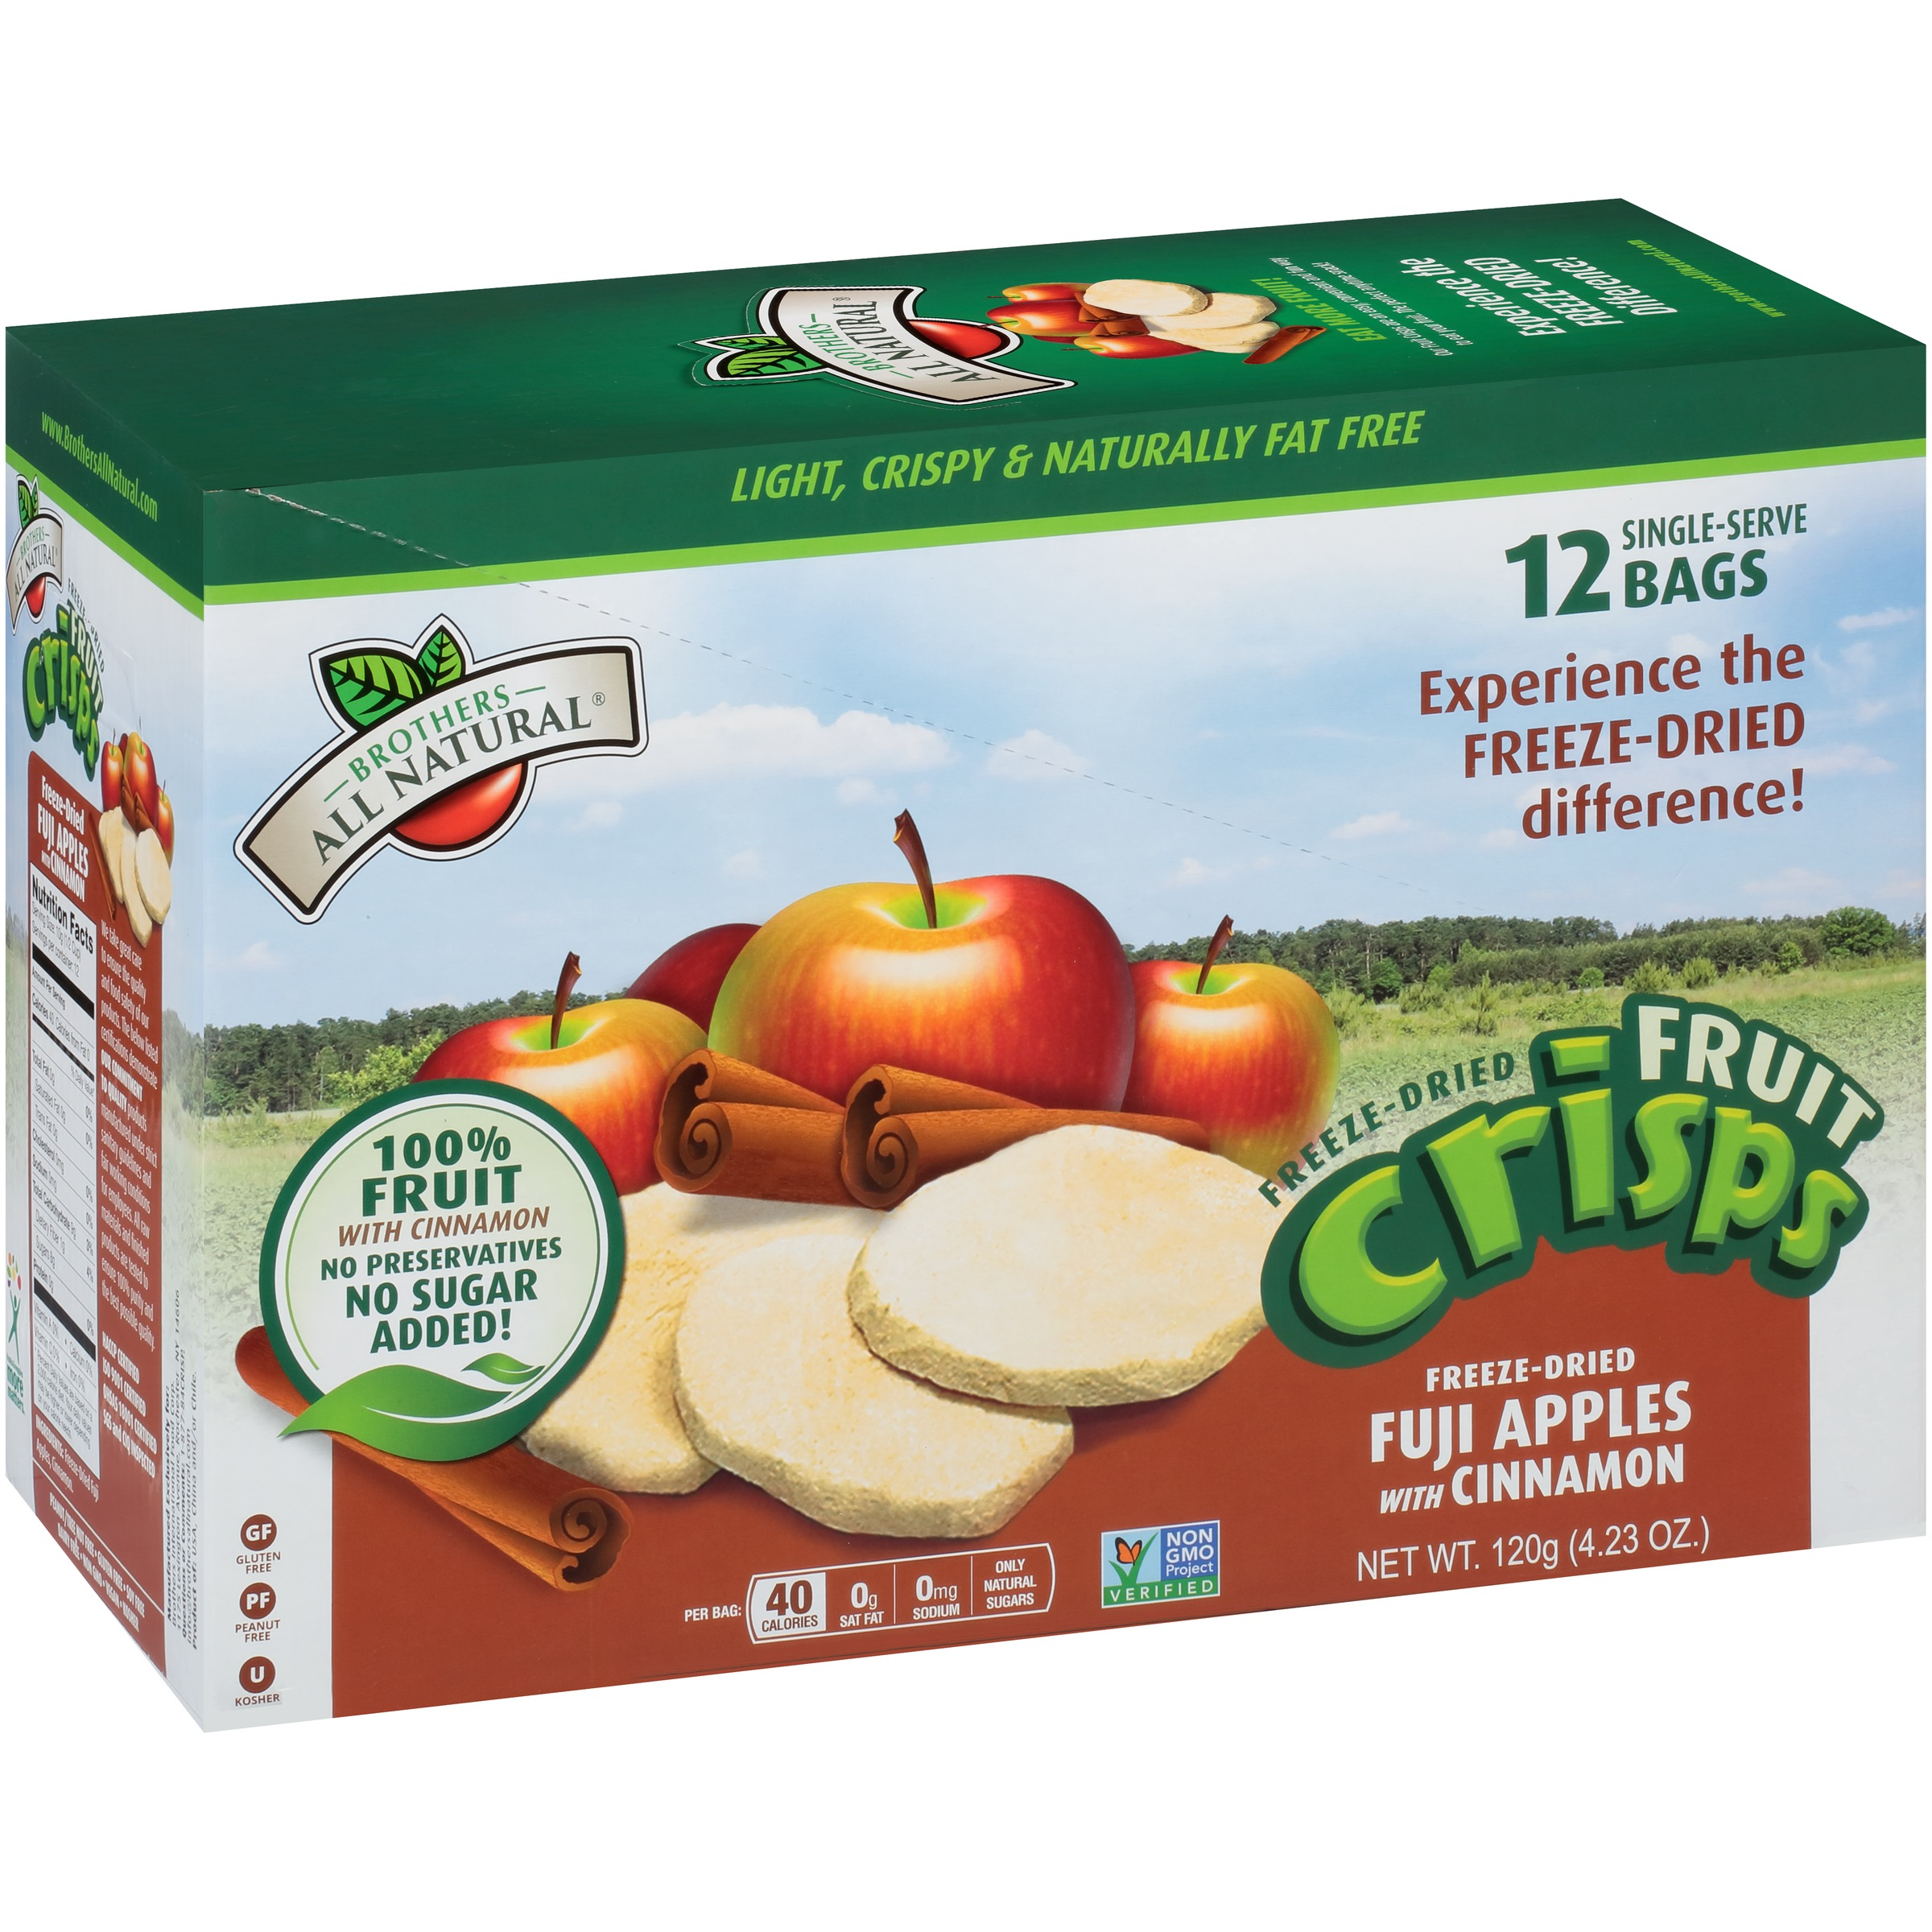 Brothers All Natural® Freeze-Dried Fuji Apples with Cinnamon Fruit Crisps 4.23 oz. Box